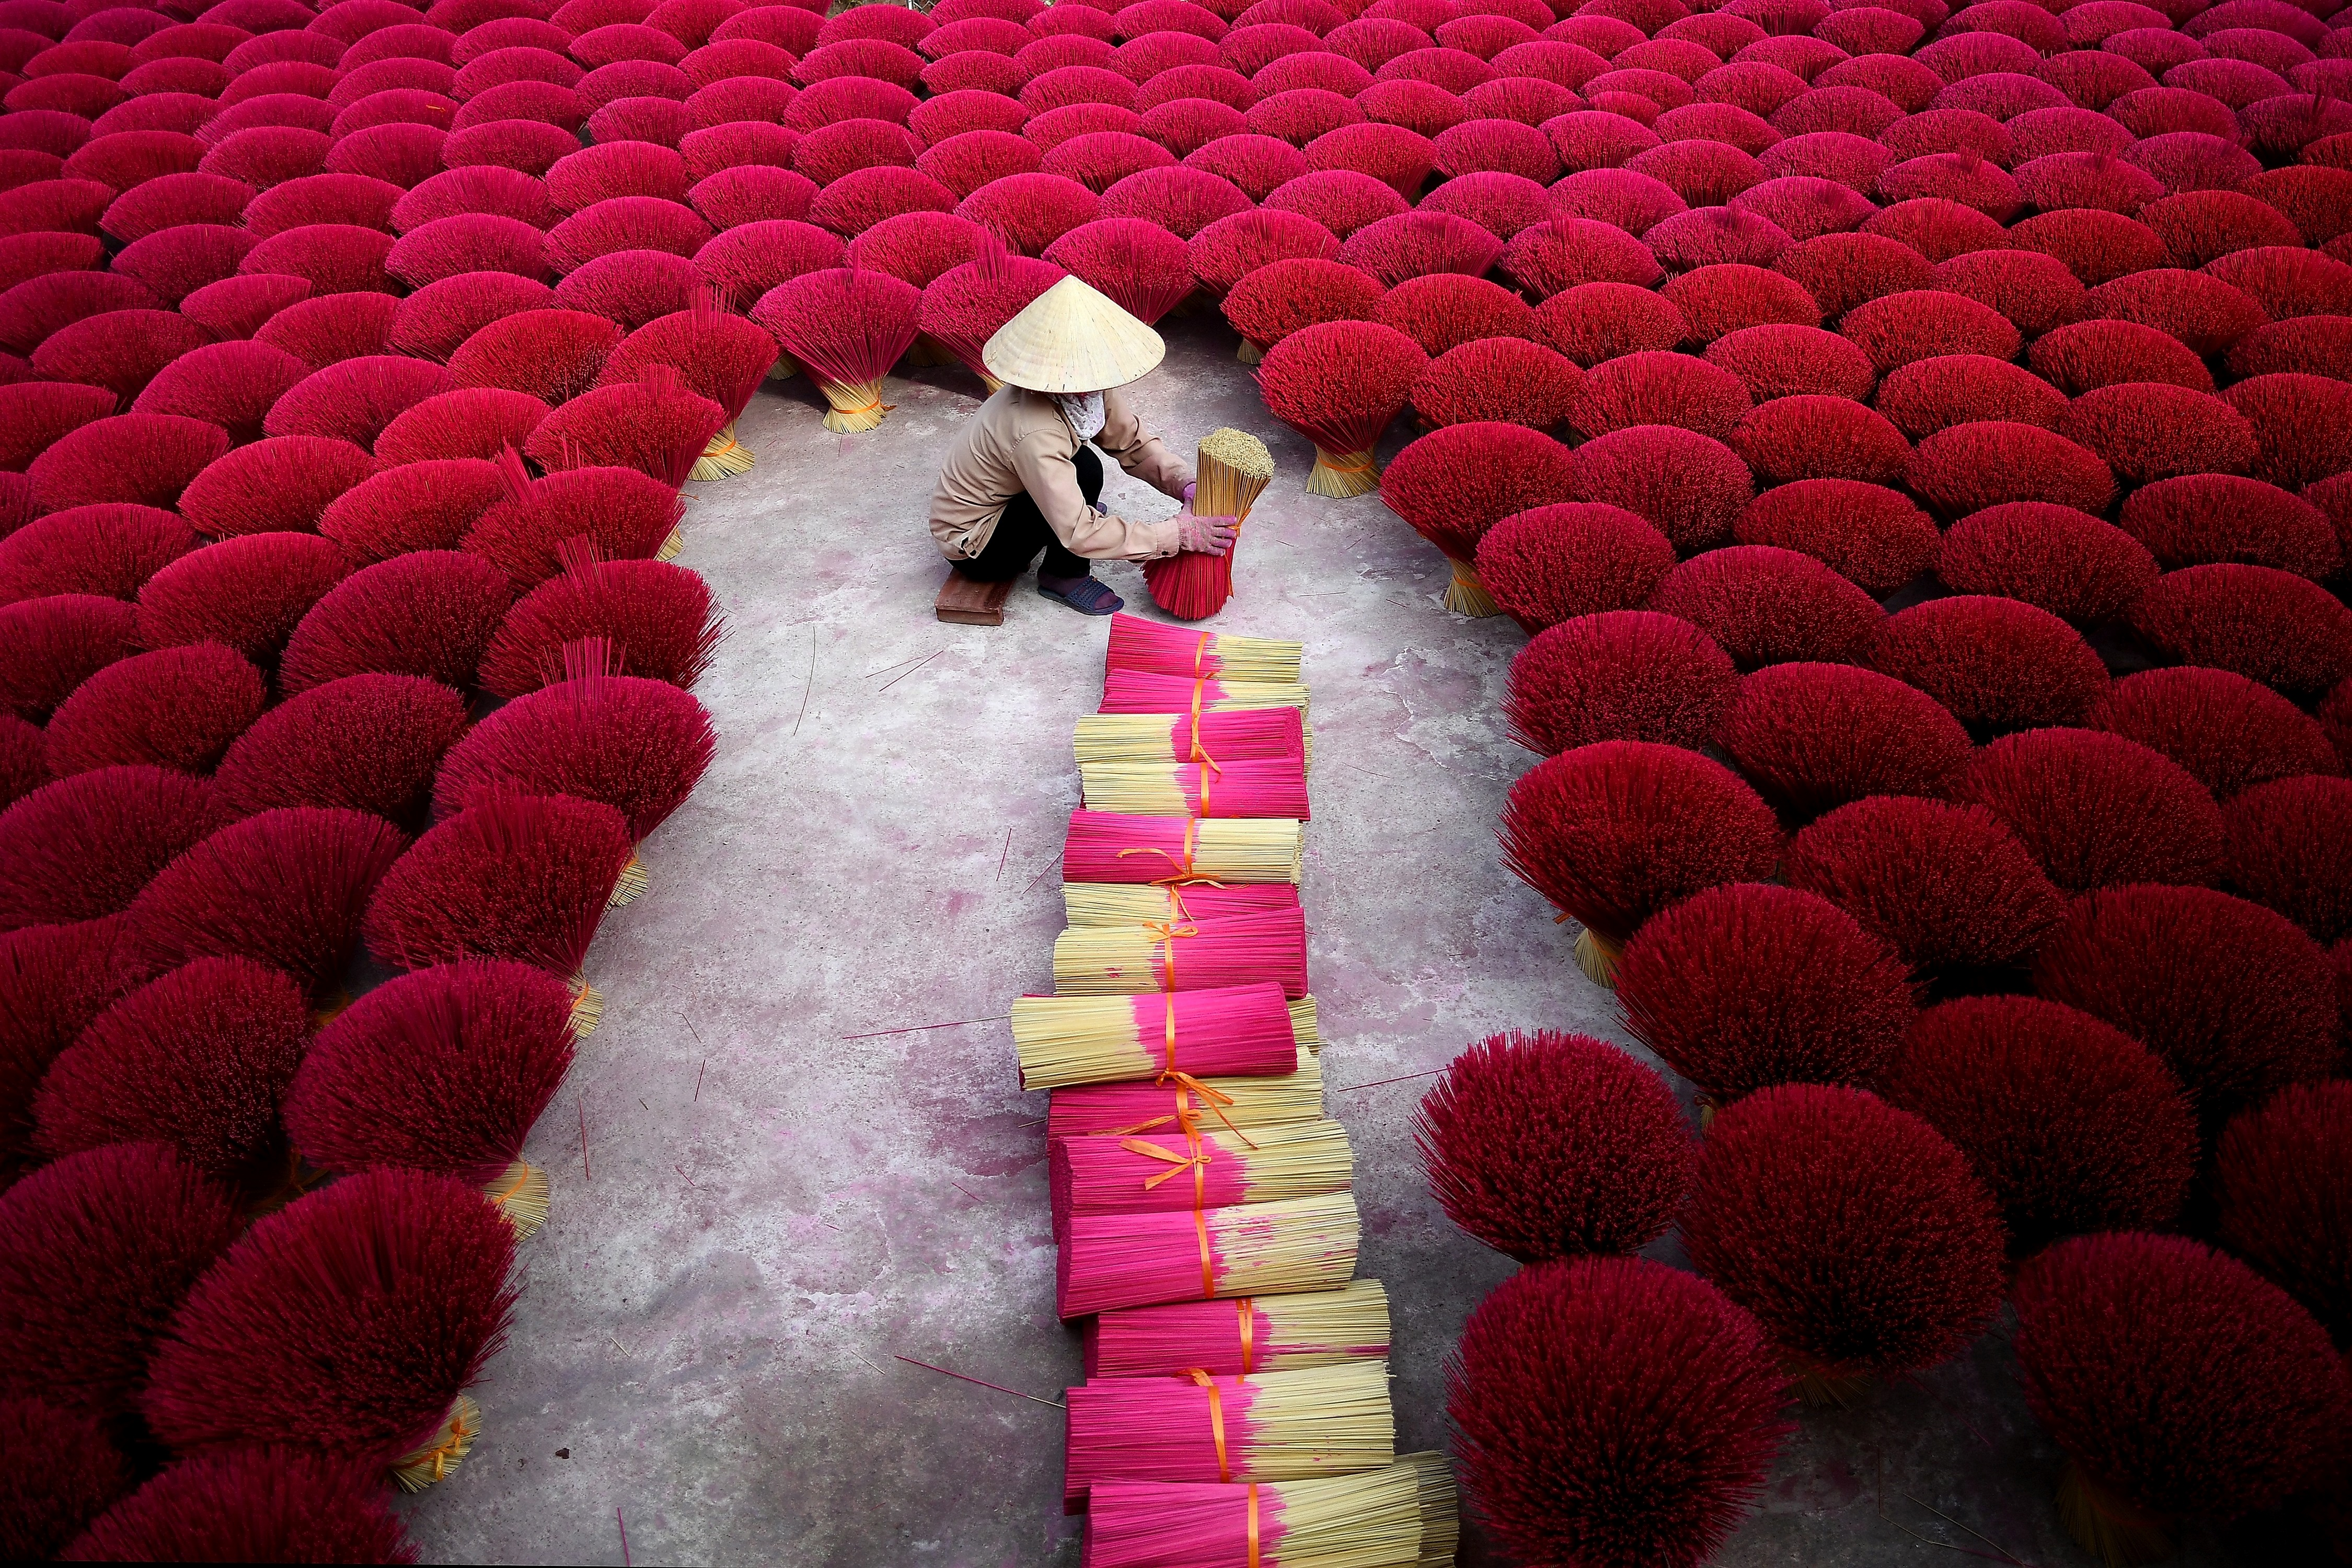 This picture taken on January 3, 2019 shows a Vietnamese woman collecting incense sticks in a courtyard in the village of Quang Phu Cau on the outskirts of Hanoi.